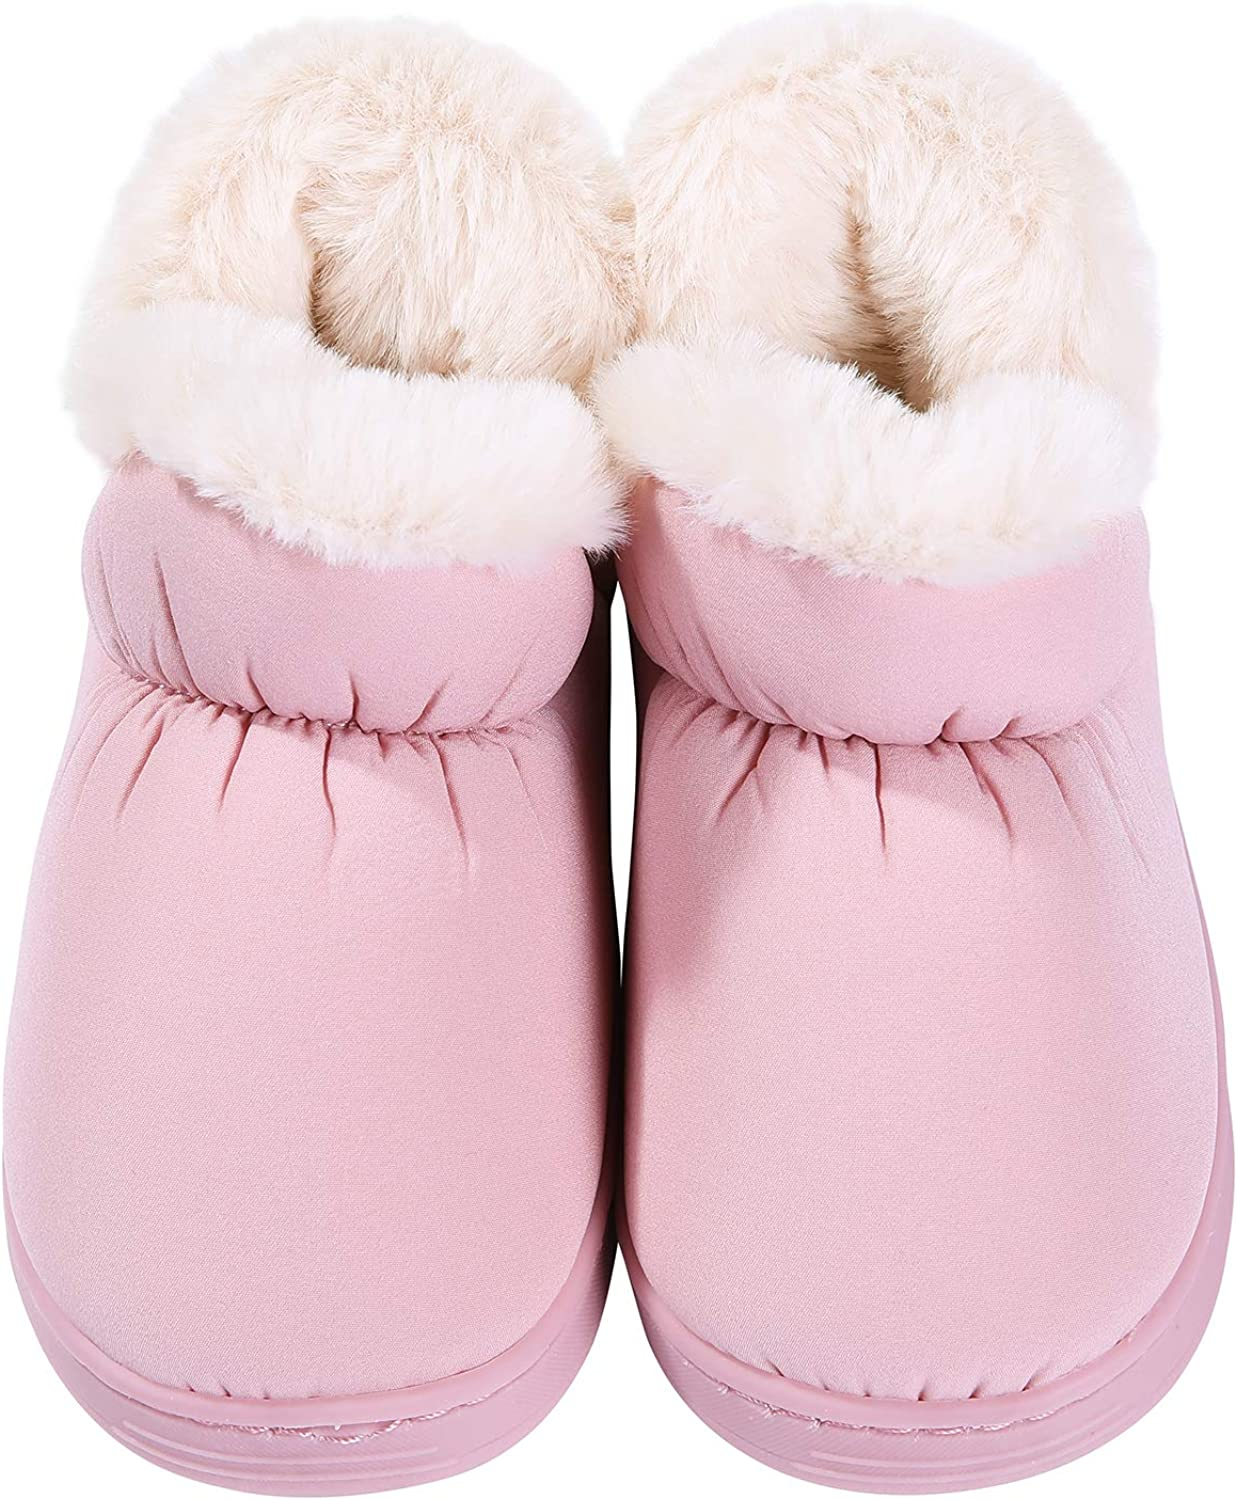 shevalues Little Girls Boys Winter Slippers Furry Ankle Home Shoes Toddler, Little Kid, 6-13.5 M